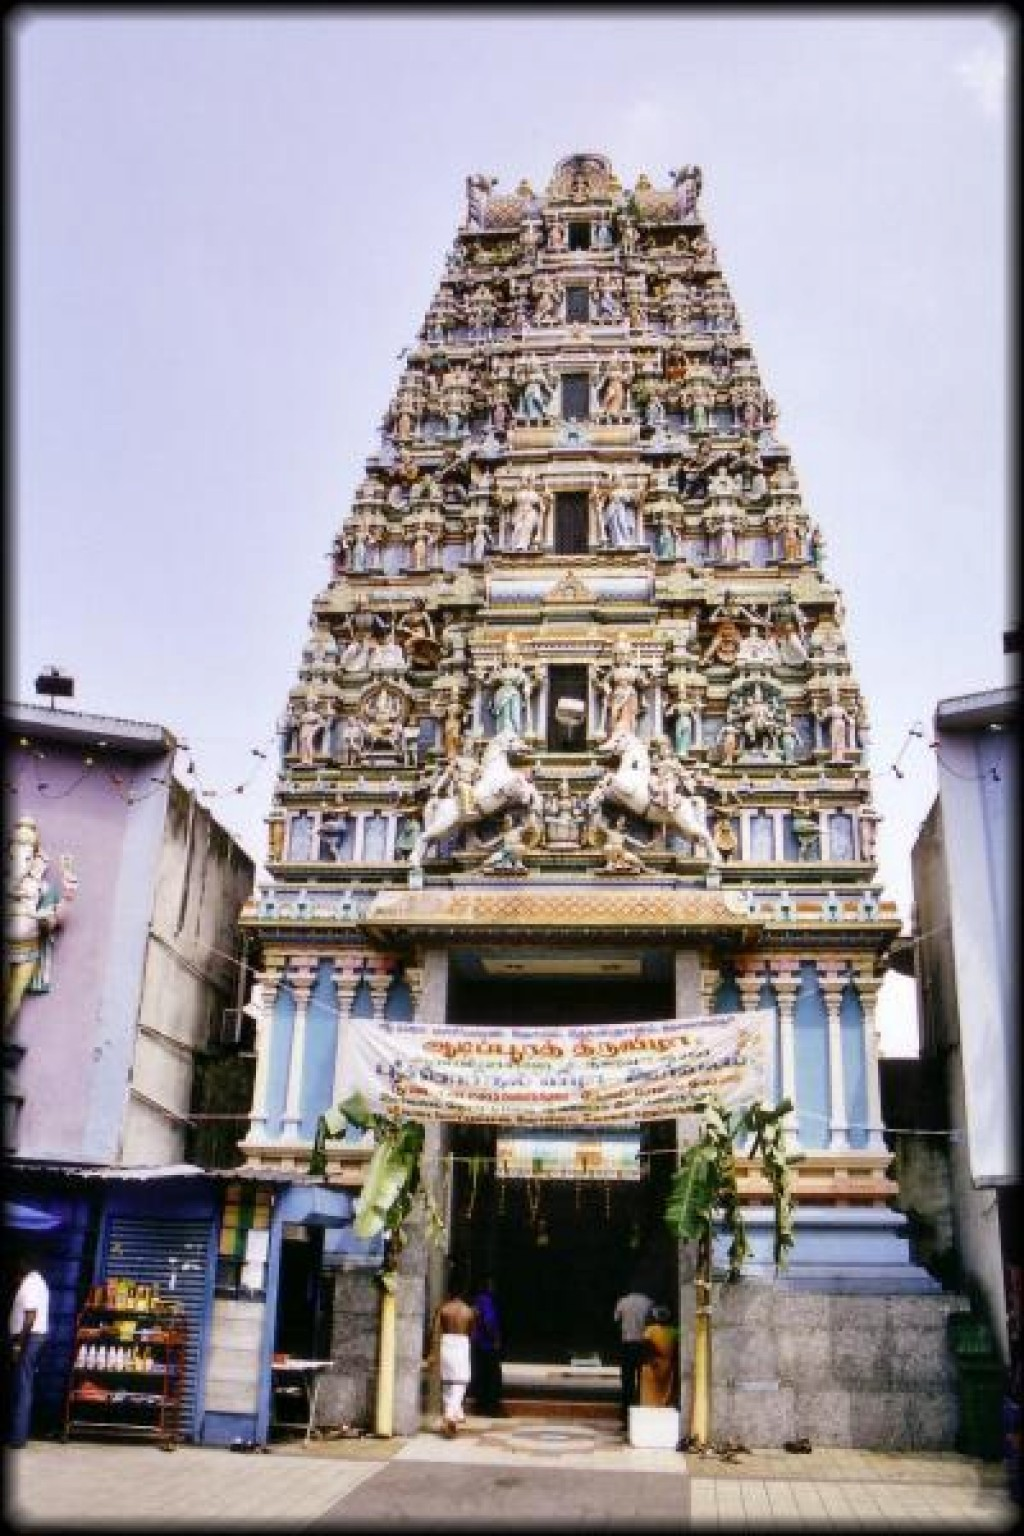 This is the Sri Maha Mariamman Temple.